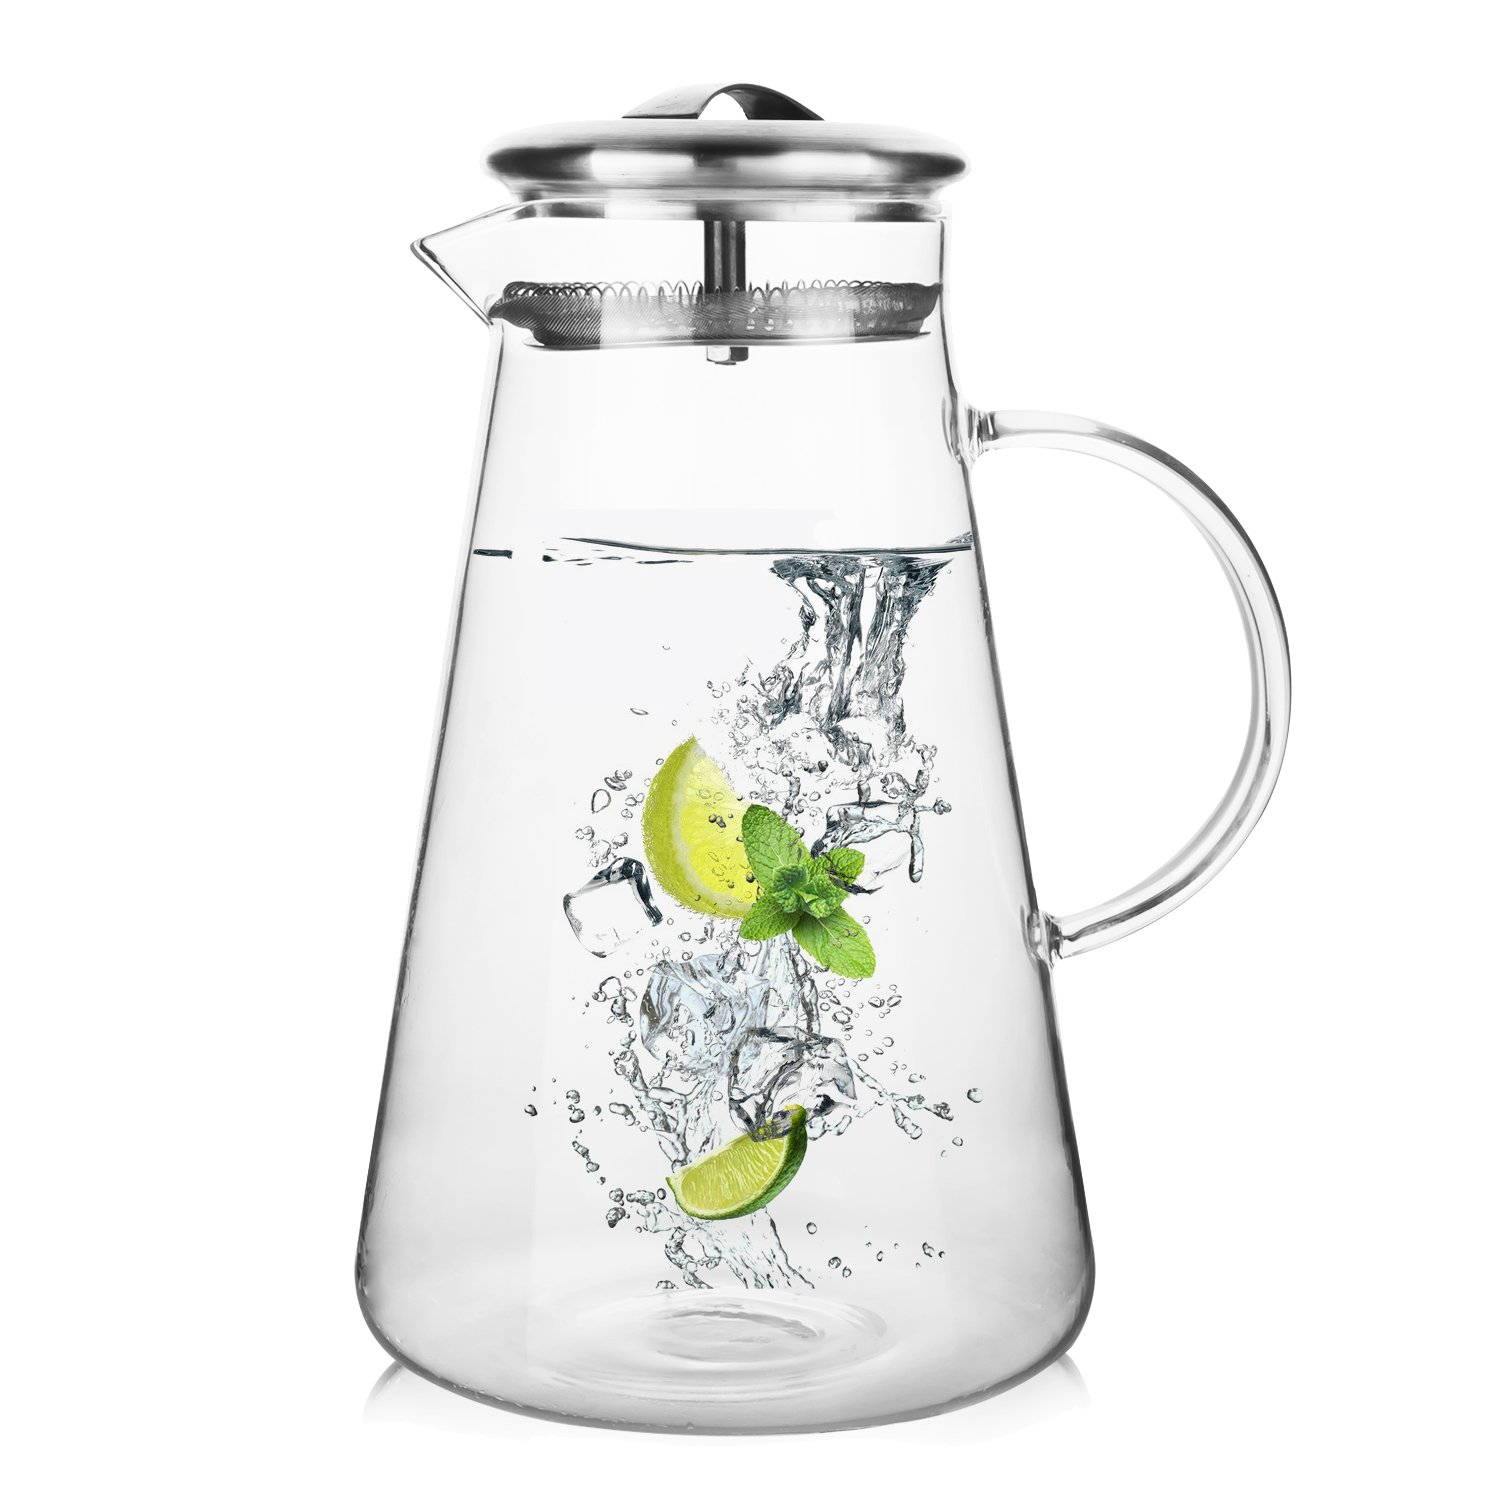 Hiware 68 Ounces Glass Pitcher with Lid and Spout, Heat Resistance Water Carafe for Hot/Cold Water, Refrigerator Pitcher for Homemade Iced Tea & Juice HIGP68